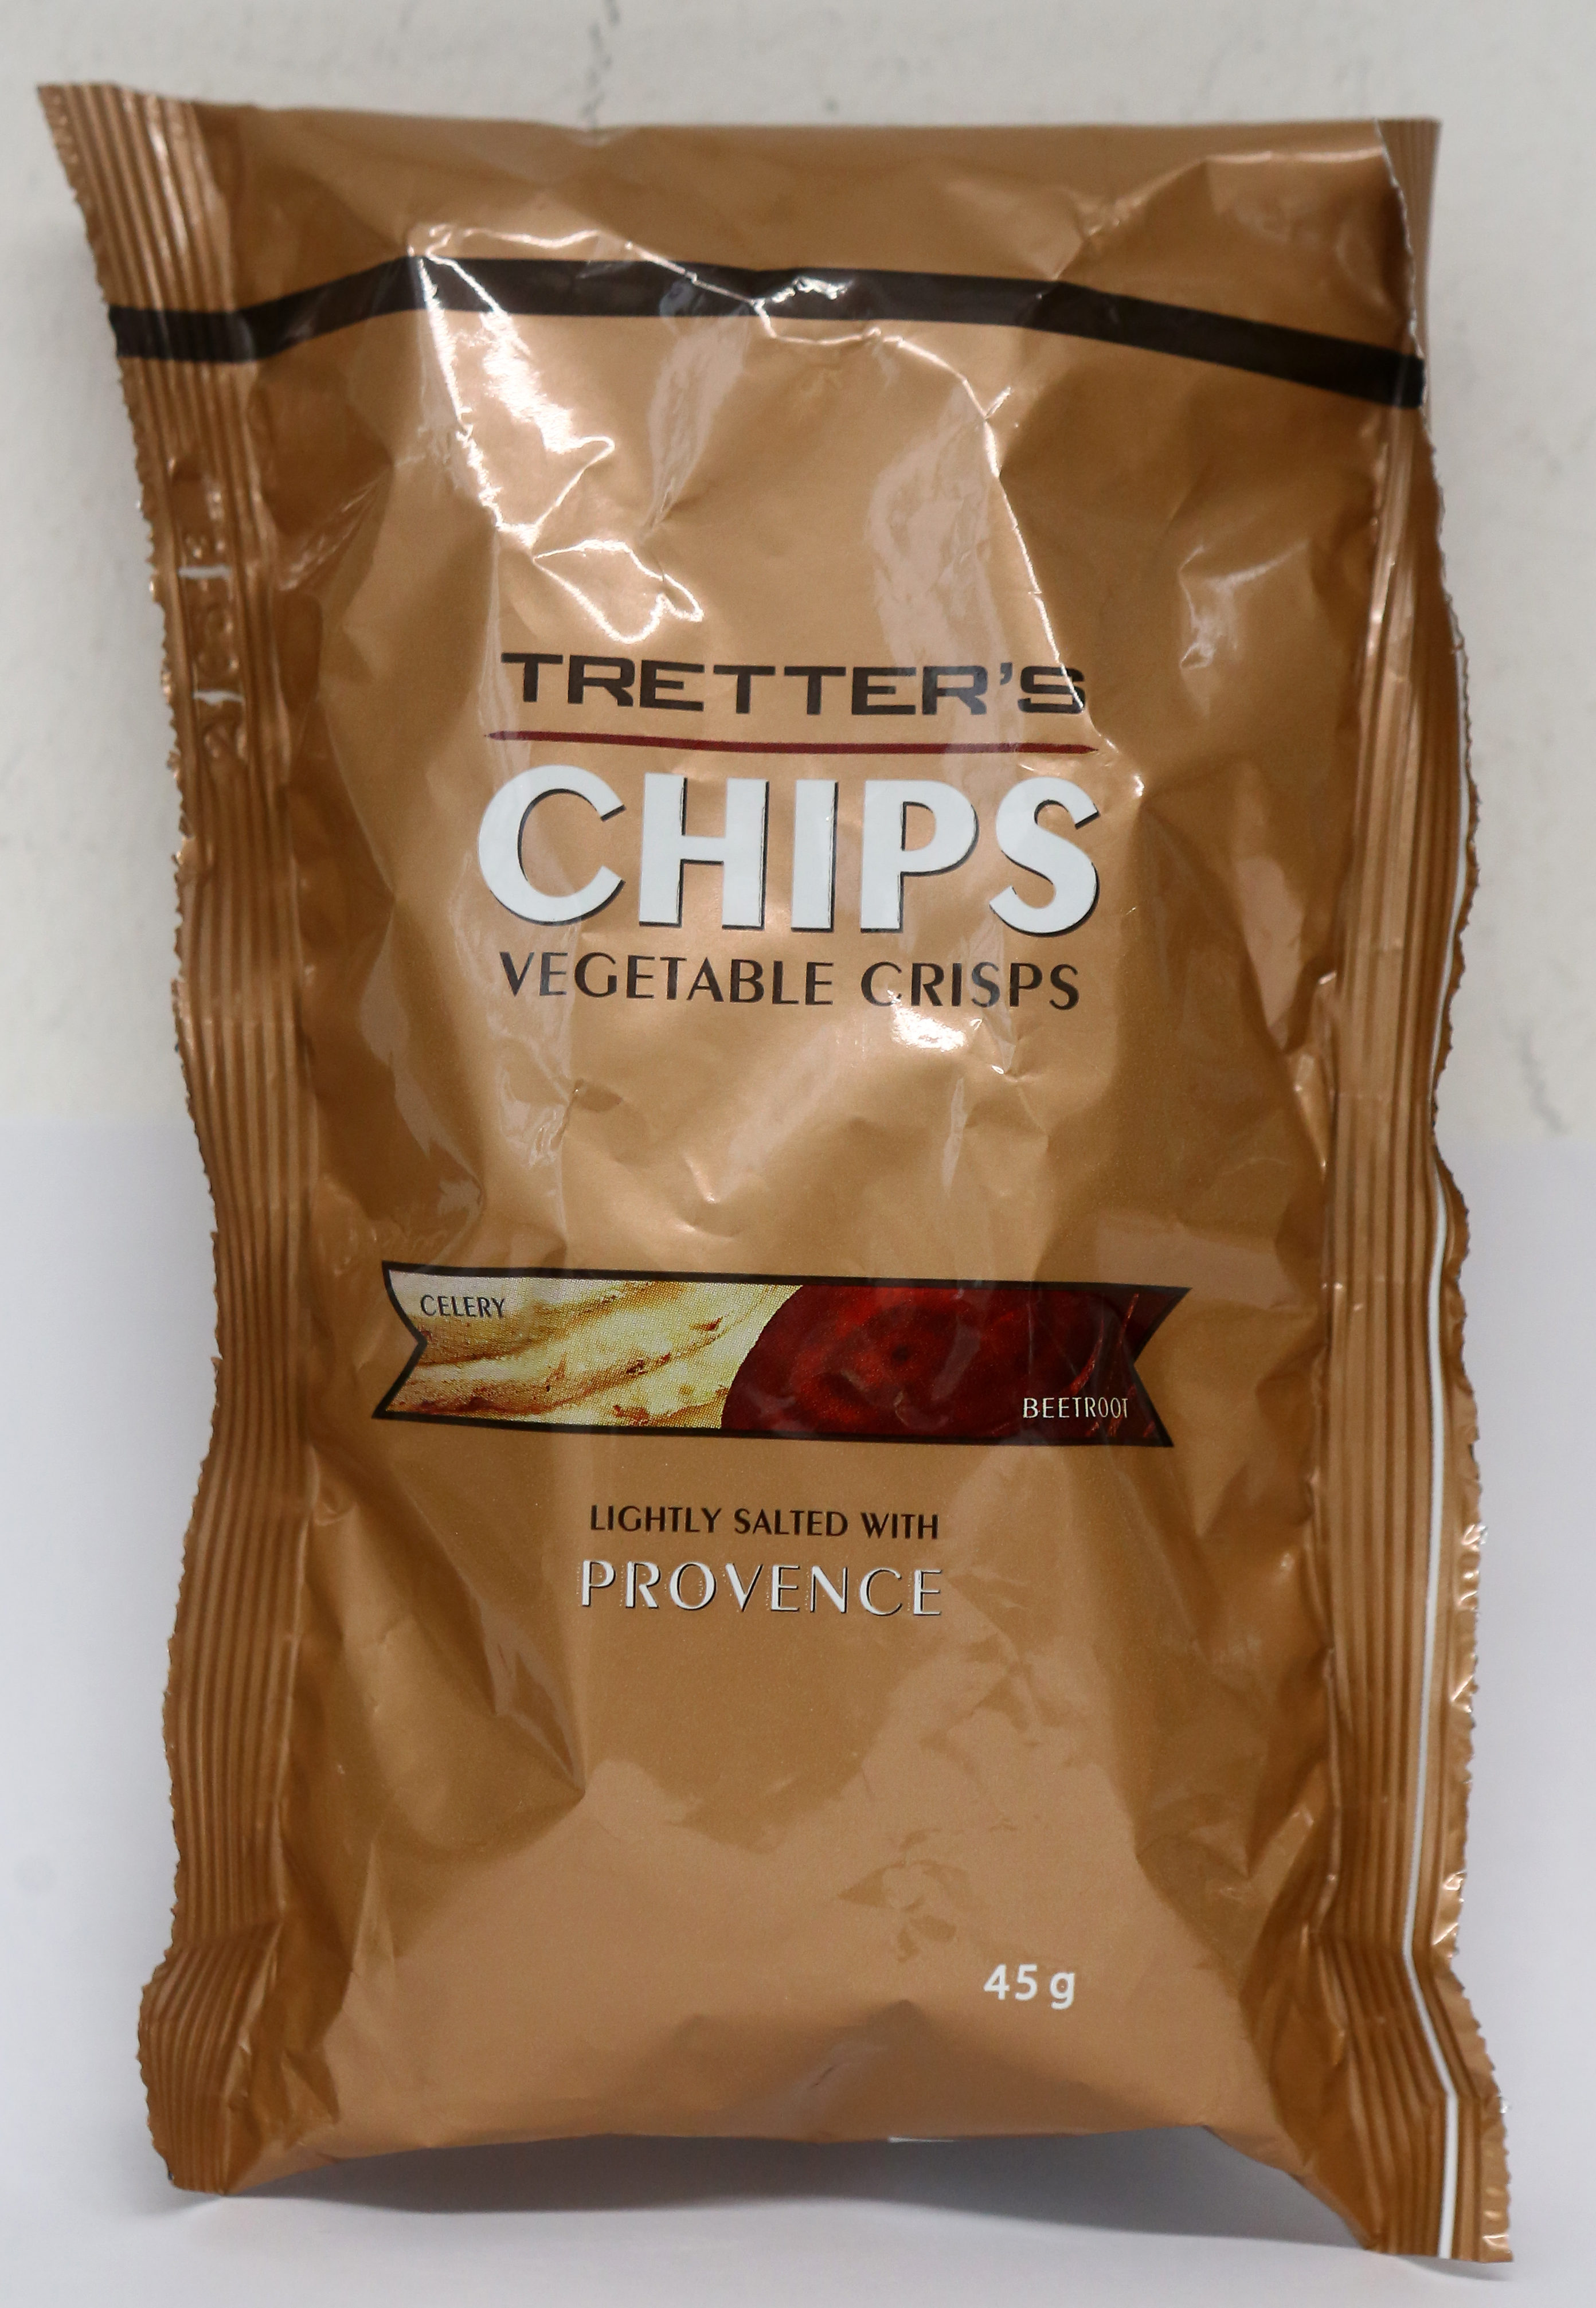 Tretters chips vegetable crisps